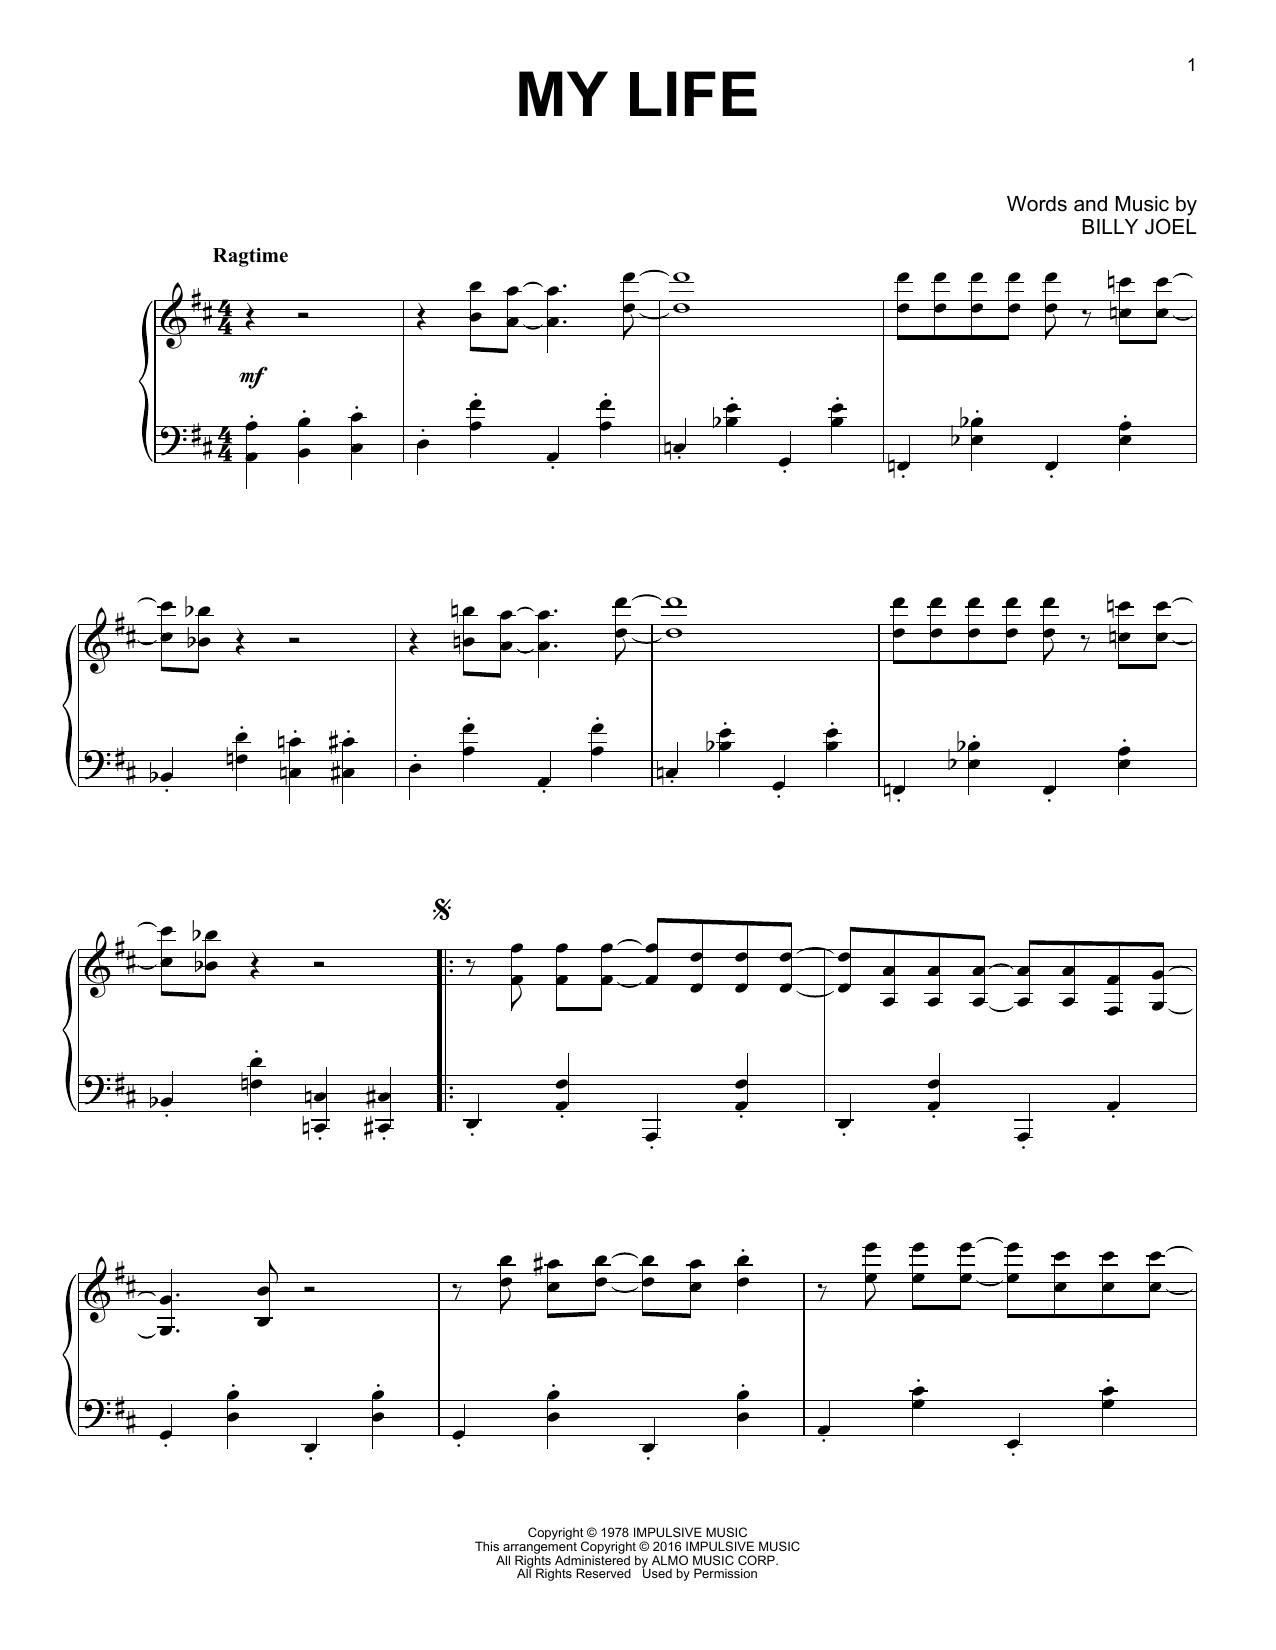 Billy Joel My Life [Jazz version] sheet music notes and chords. Download Printable PDF.